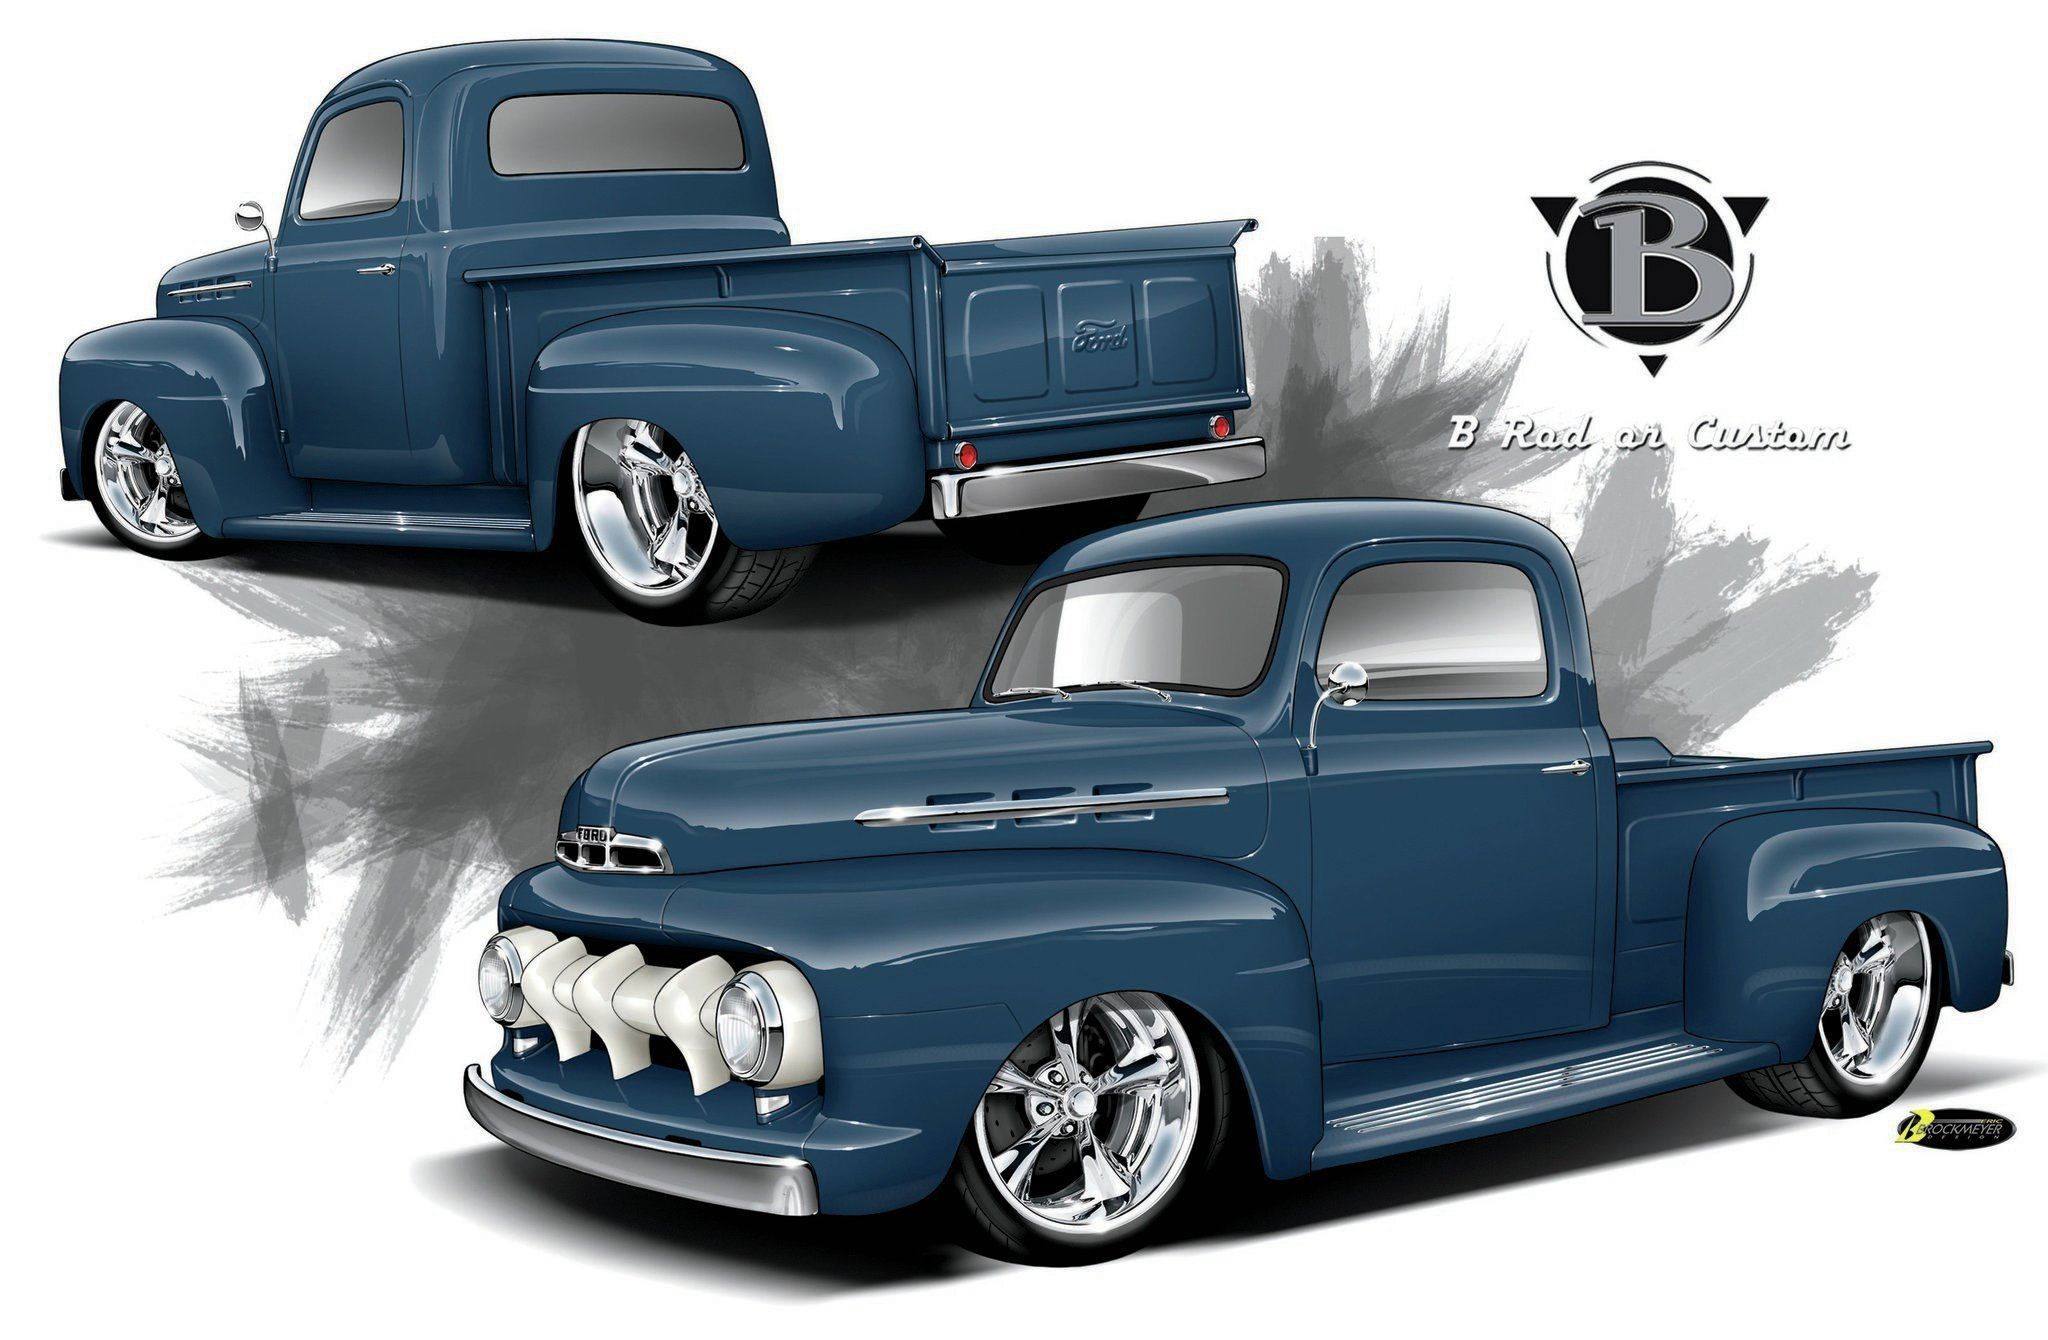 Res 2048x1340 Excellent Ford F Pickup Rendering With Custom Chevy Trucks Wallpaper Classic Ford Trucks Classic Chevy Trucks 1952 Ford Truck